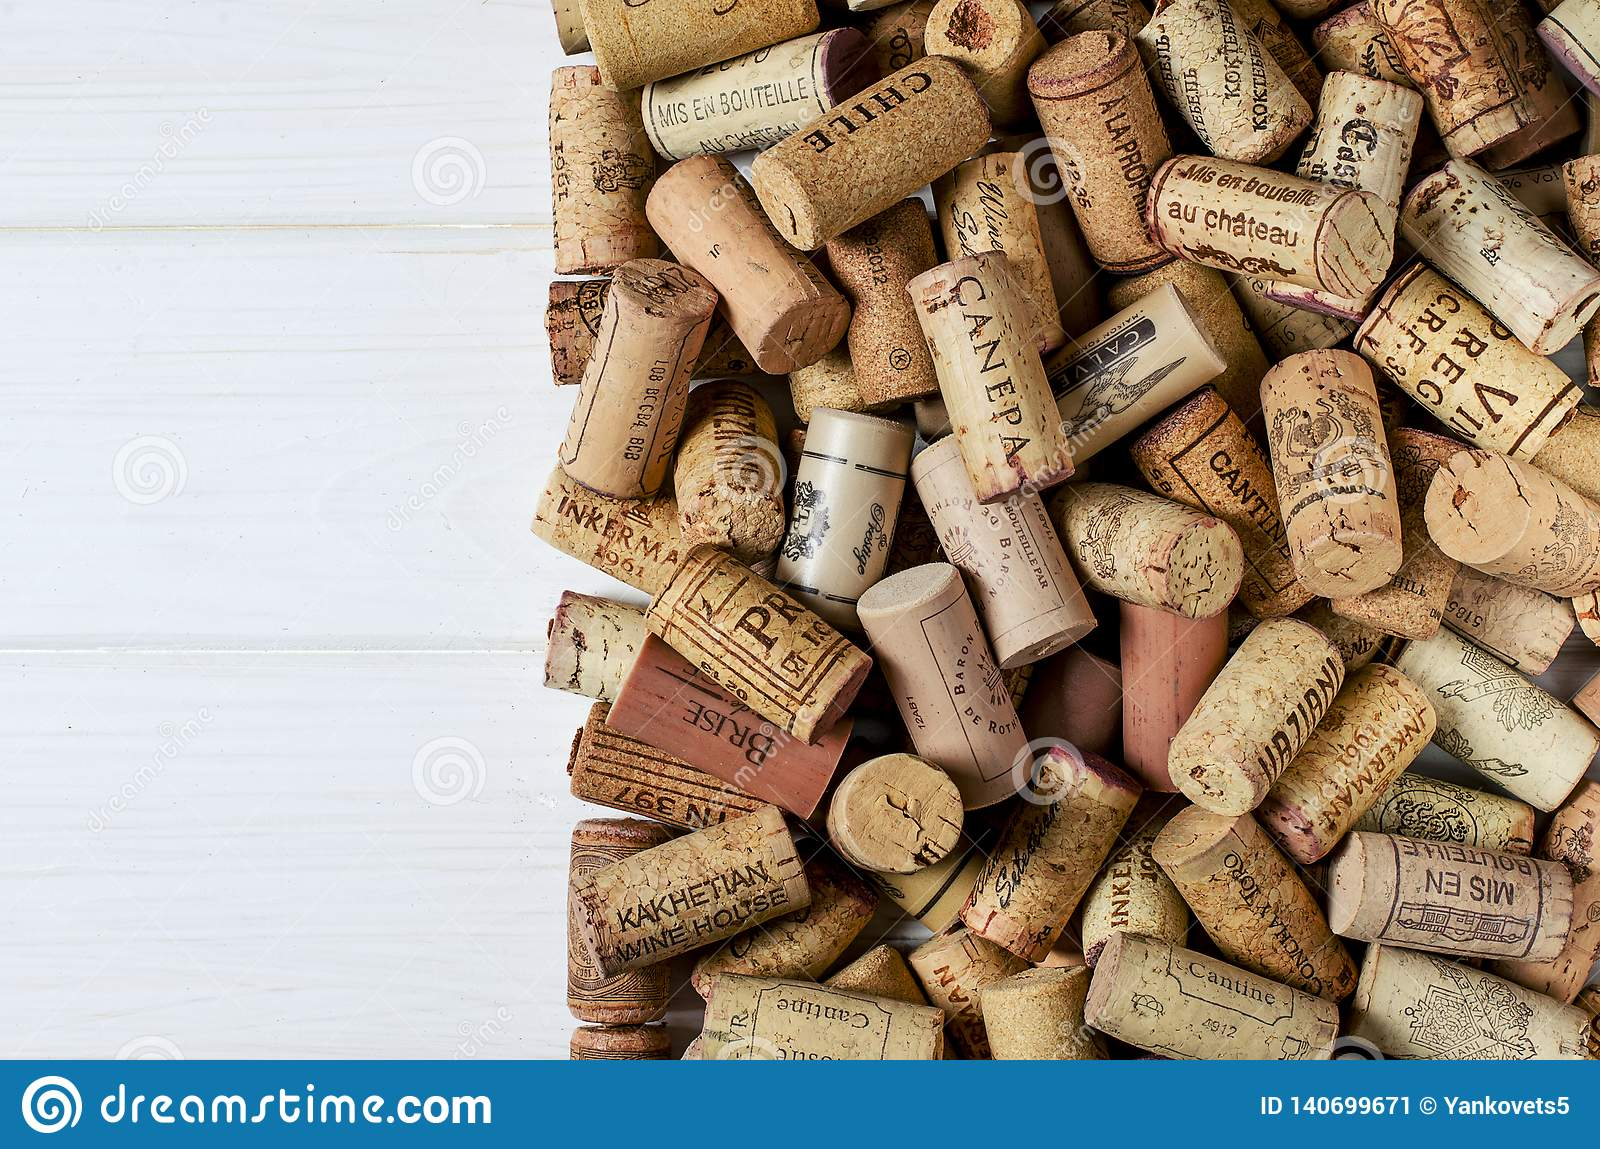 Background Pattern Of Different Wine Bottle Corks, Winery